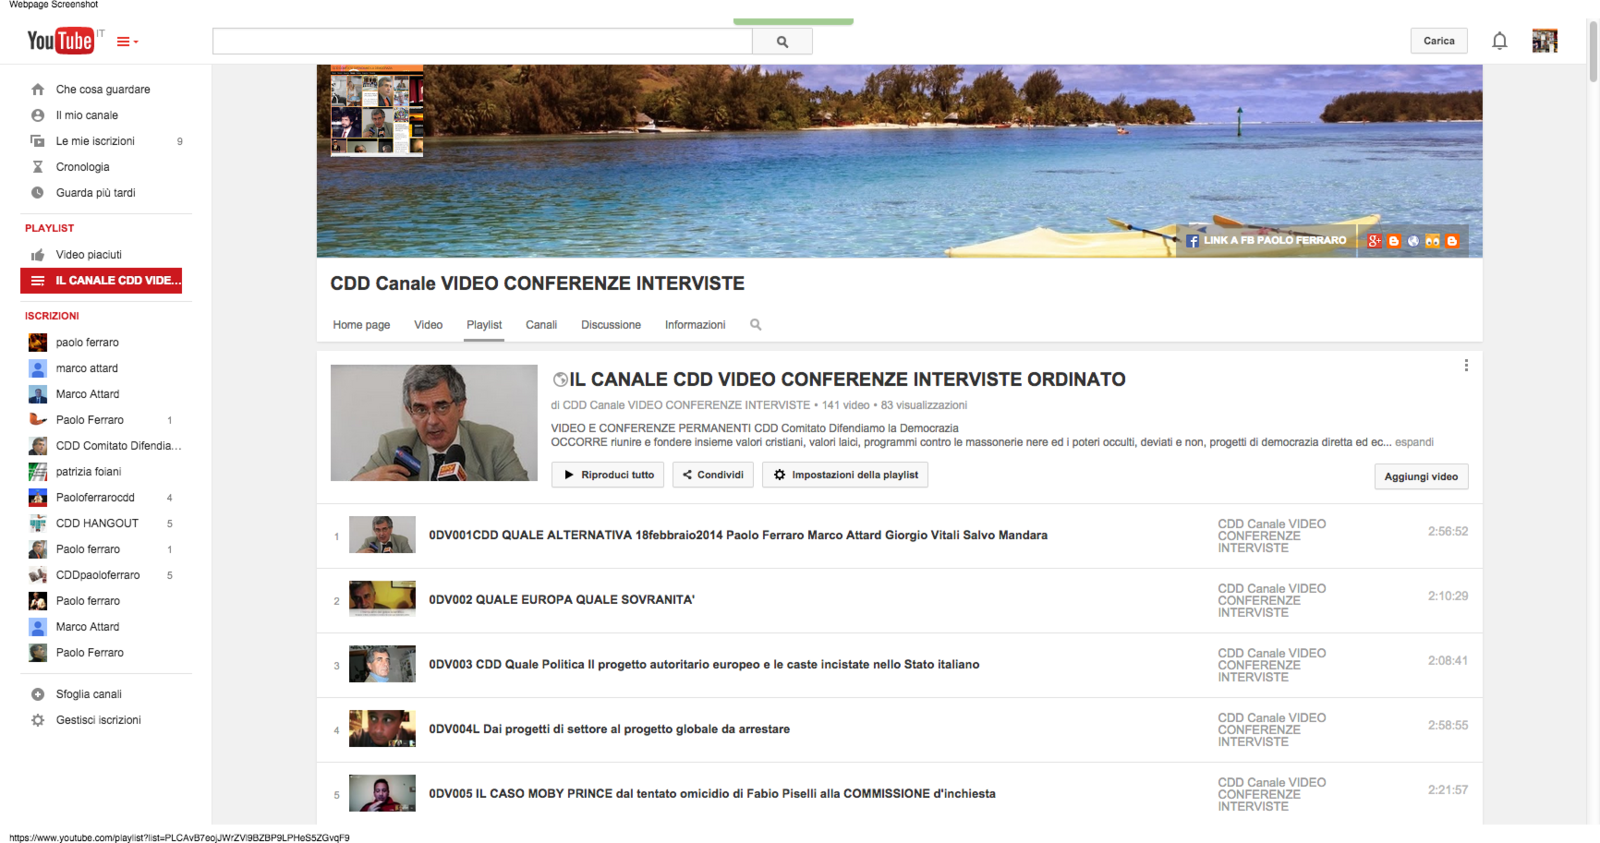 LA PLAYLIST INTEGRALE DEI VIDEO DEL CDD CARICATA SU CANALE YOUTUBE E LA CONNESSIONE IN COUCH MODE PER I VIDEO VIMEO